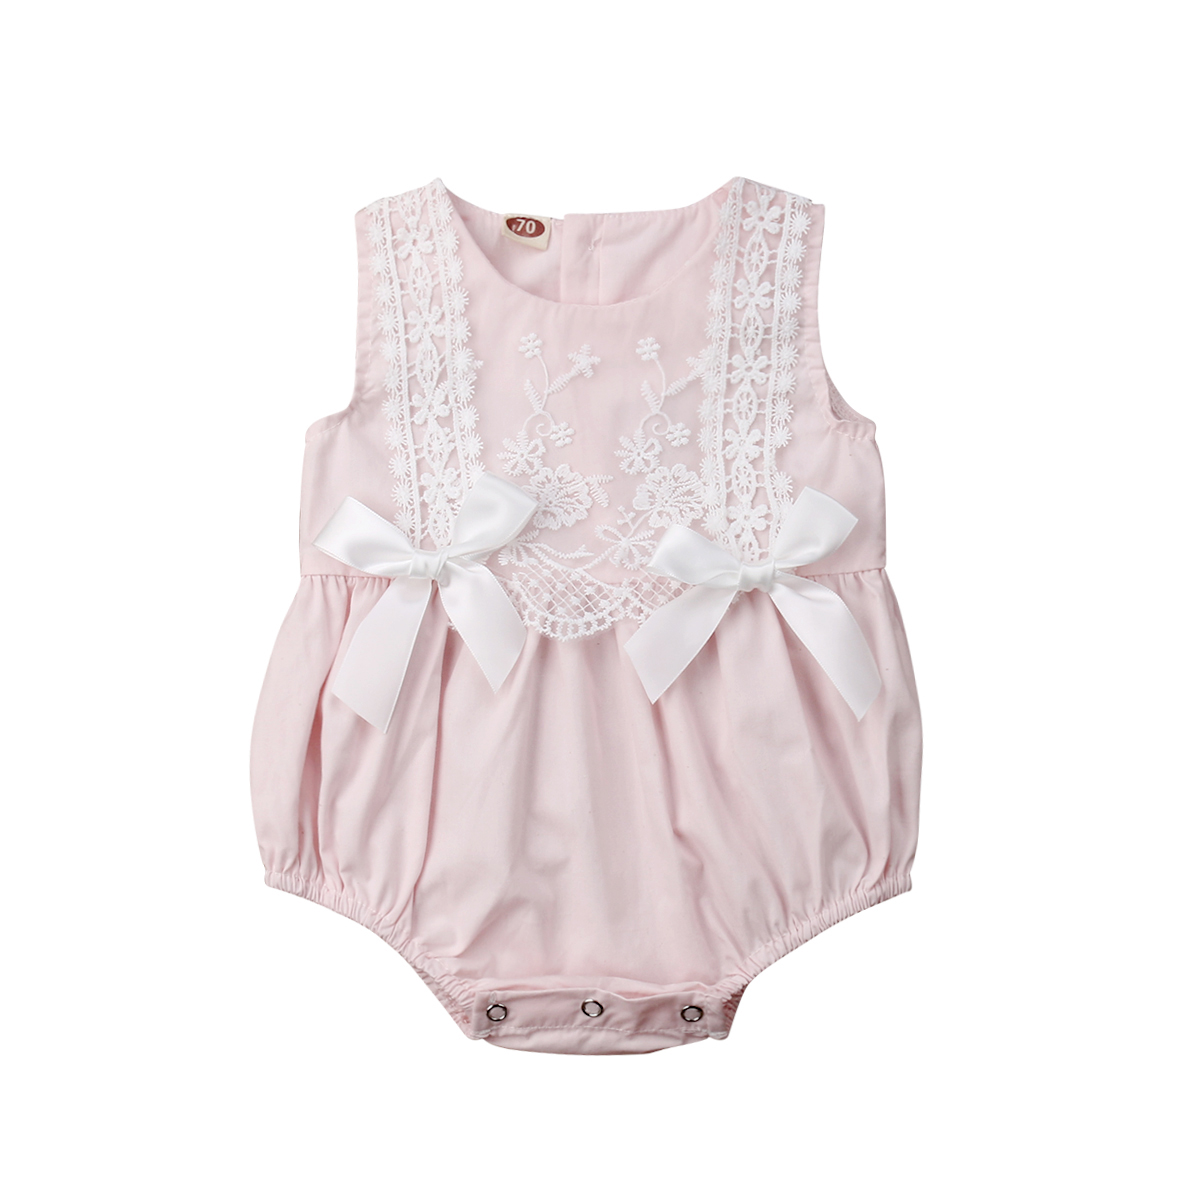 2019 New Infant Newborn Baby Girls Clothing Lace Ruffles   Rompers   Jumpsuit Cute Bow Sunsuit Summer Baby Girls Costume